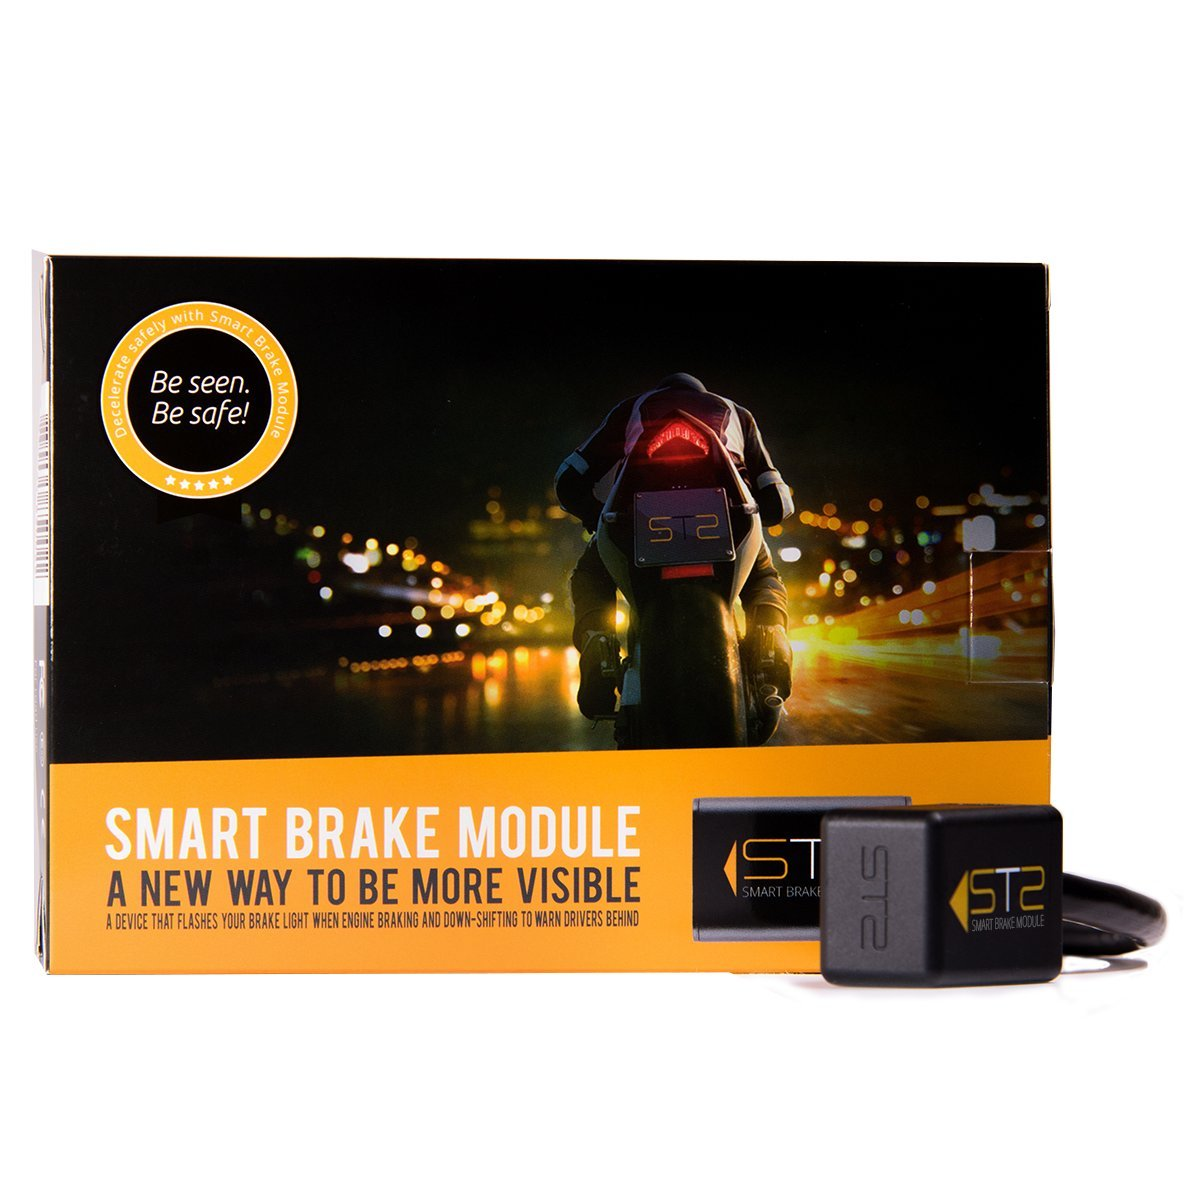 Smart Brake Module - Smart brake light, brake light modulator, SBM, STS, Smart Turn System by Smart Turn System